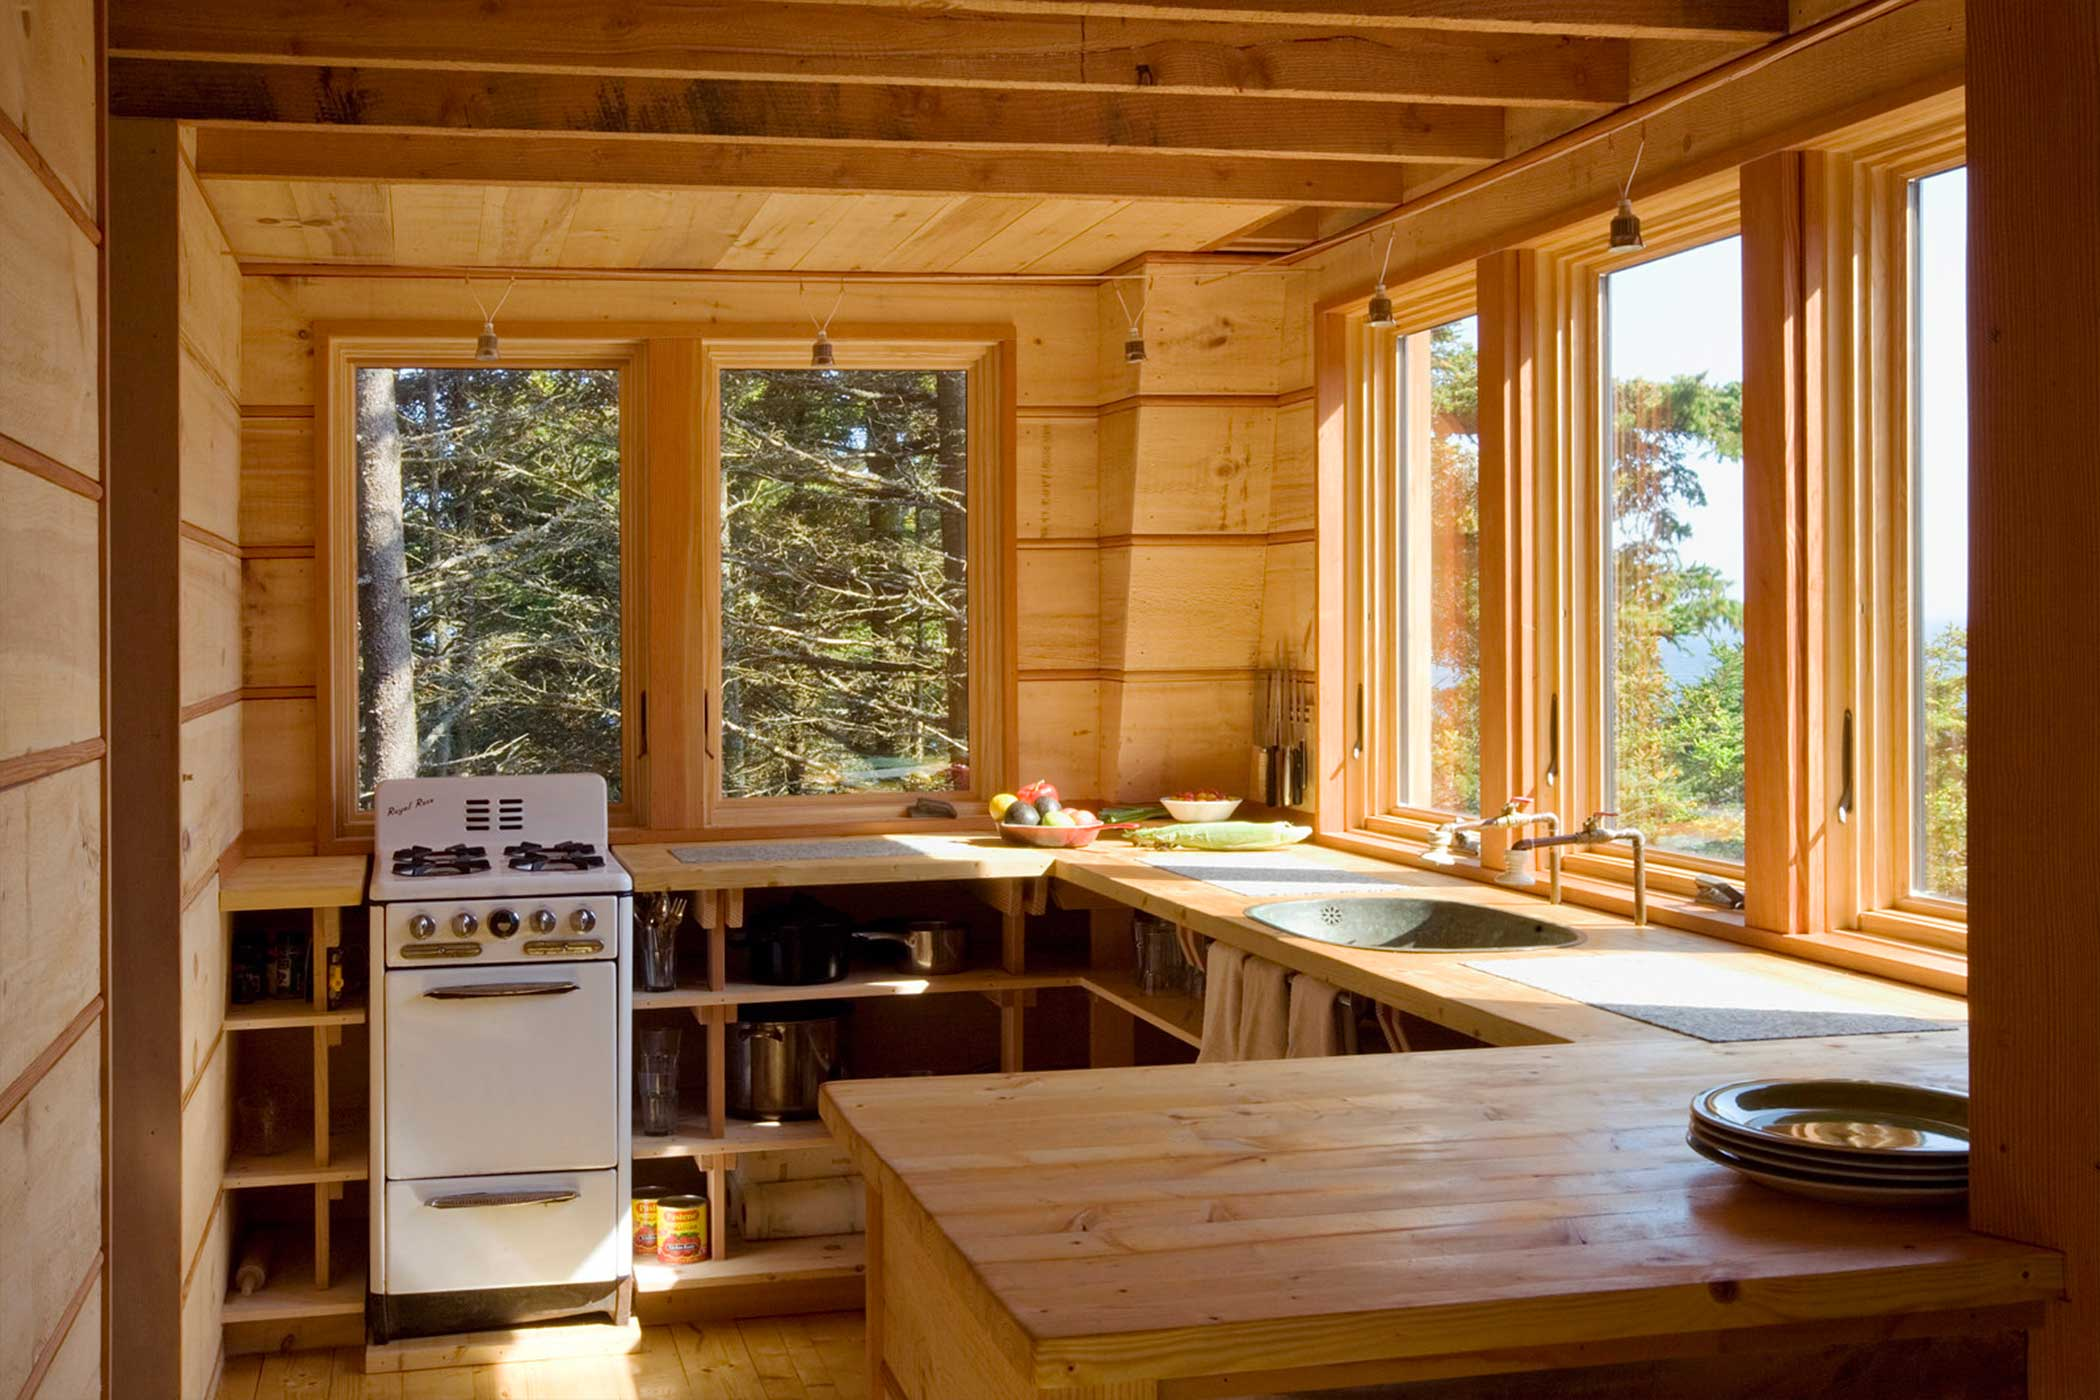 'Off Grid - Kitchen' by Christopher Campbell Architecture